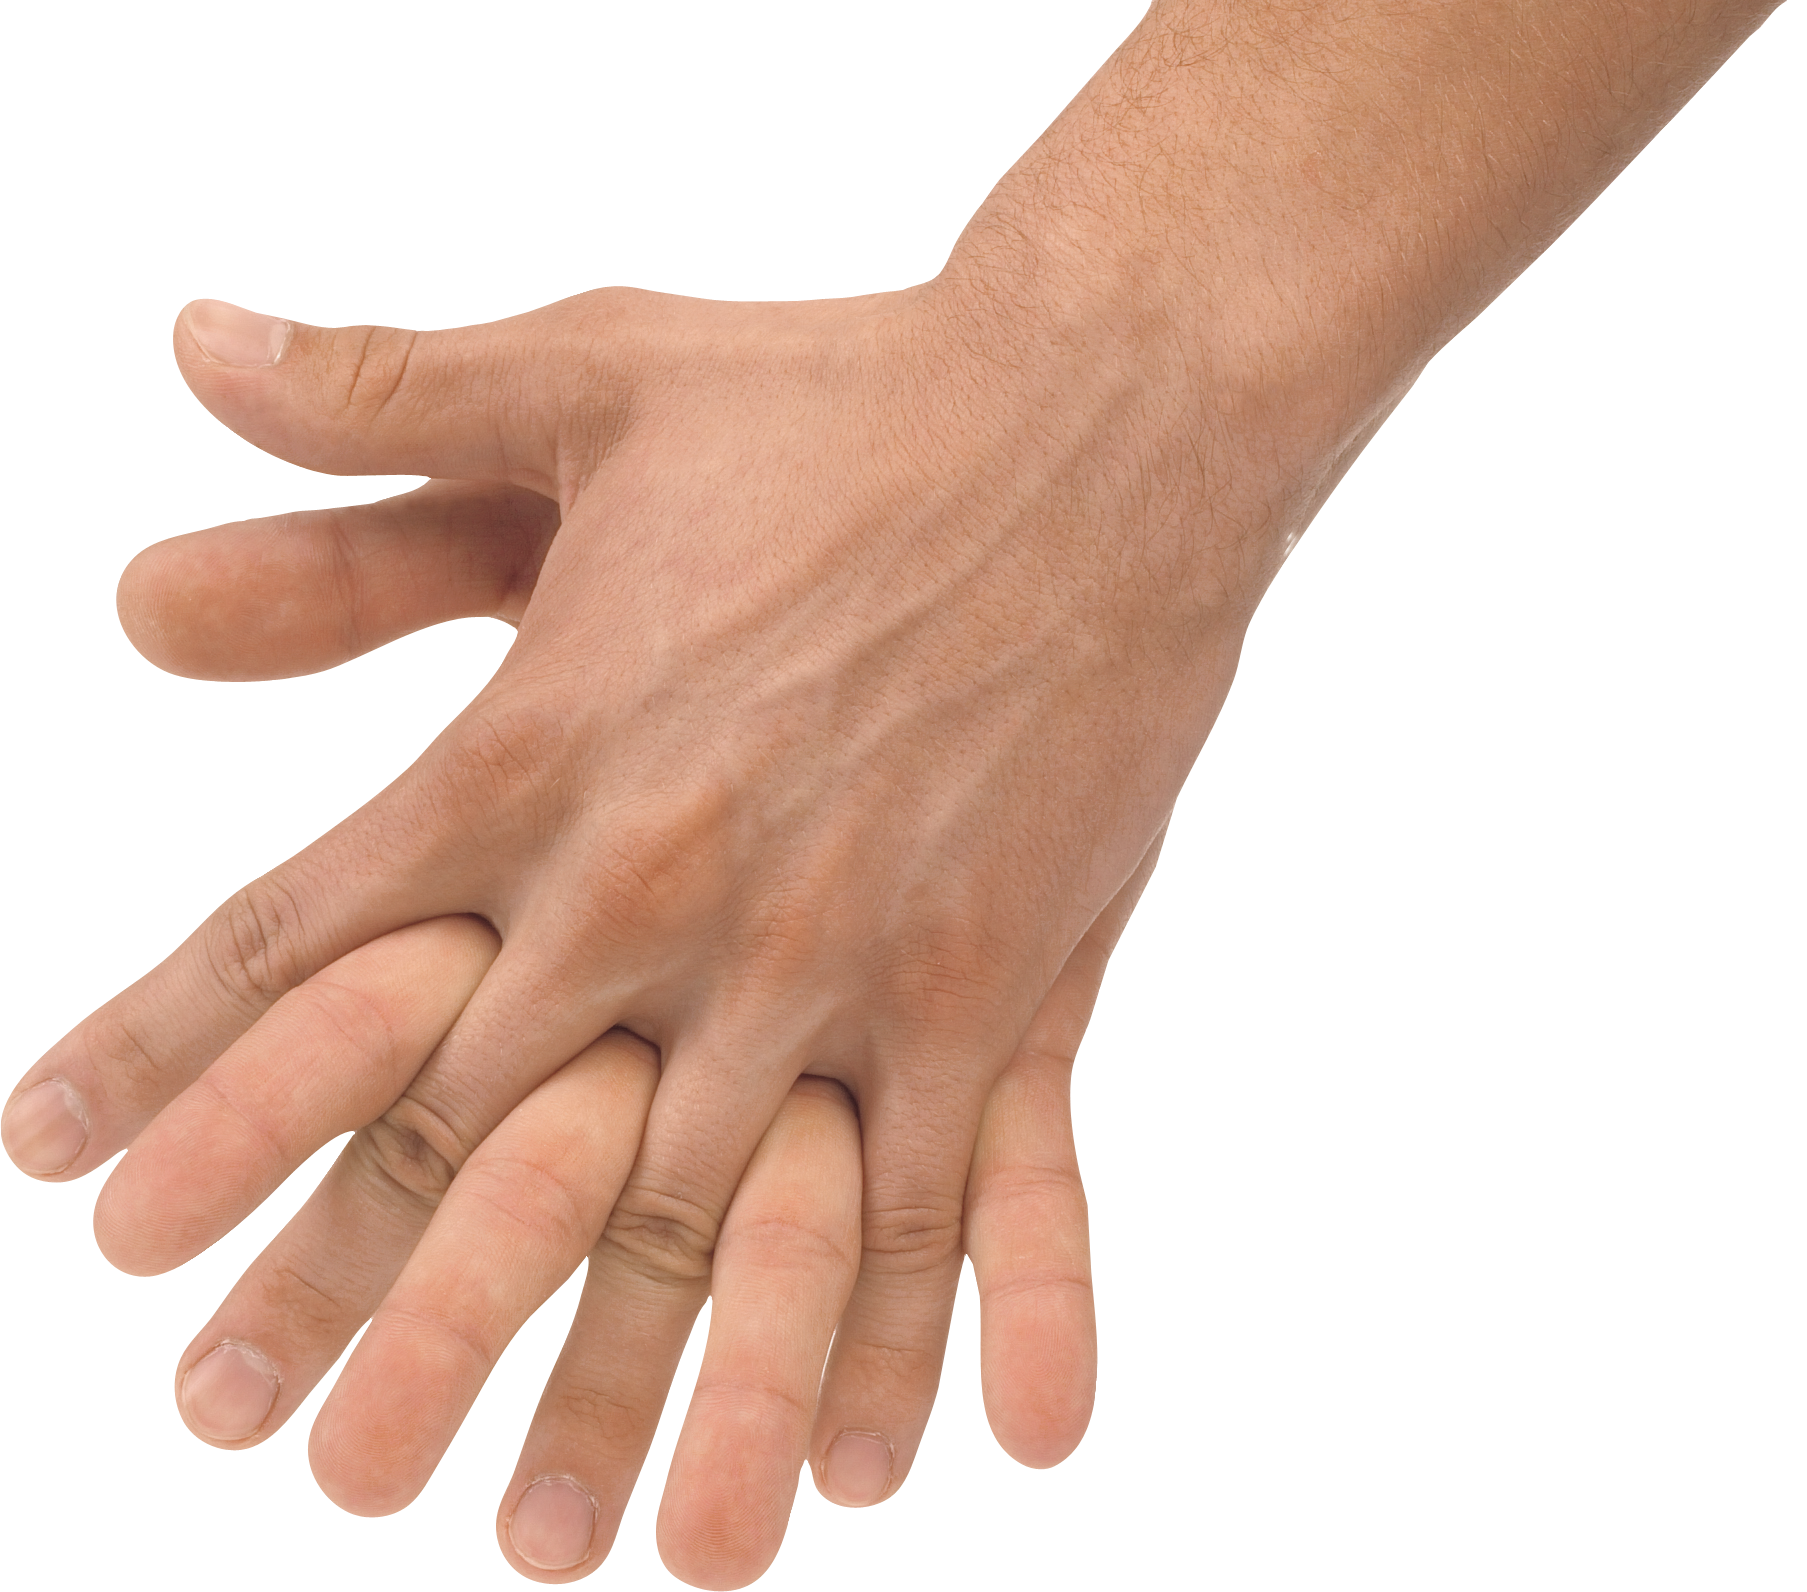 two hands, arm png